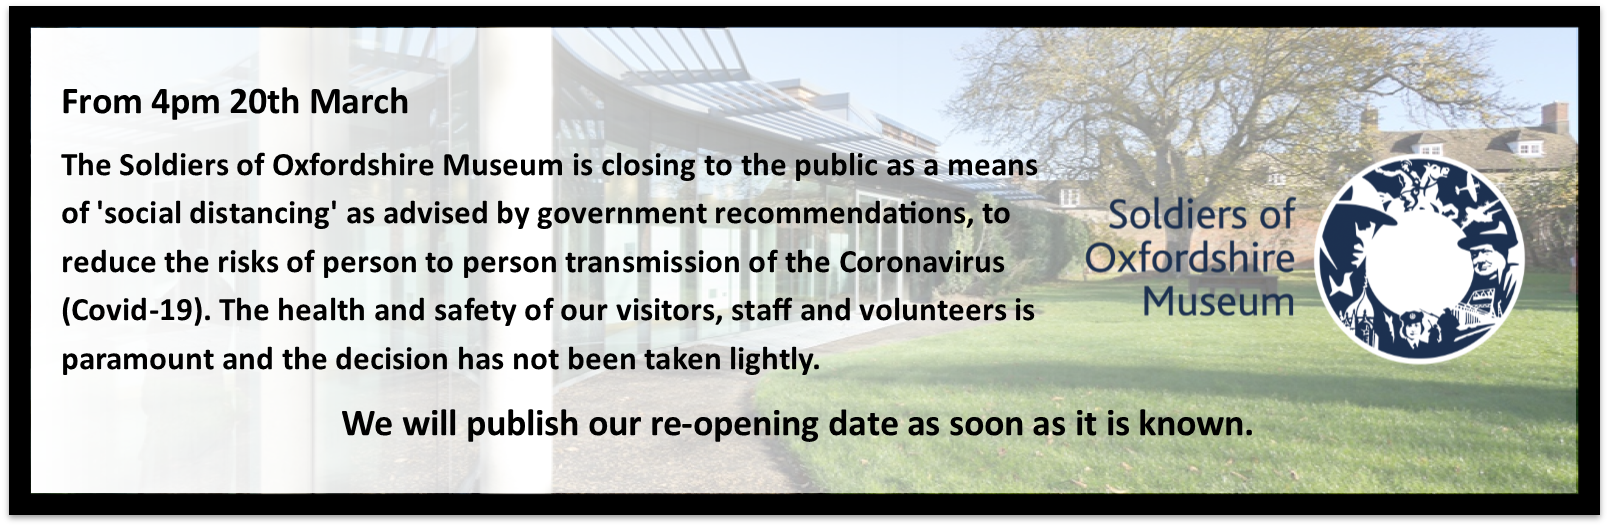 From 20th March at 4pm The Soldiers of Oxfordshire Museum is closing to the public as a means of 'social distancing' as advised by government recommendations, to reduce the risks of person to person transmission of the Coronavirus (Covid-19). The health and safety of our visitors, staff and volunteers is paramount and the decision has not been taken lightly. We will publish our re-opening date as soon as it is known.